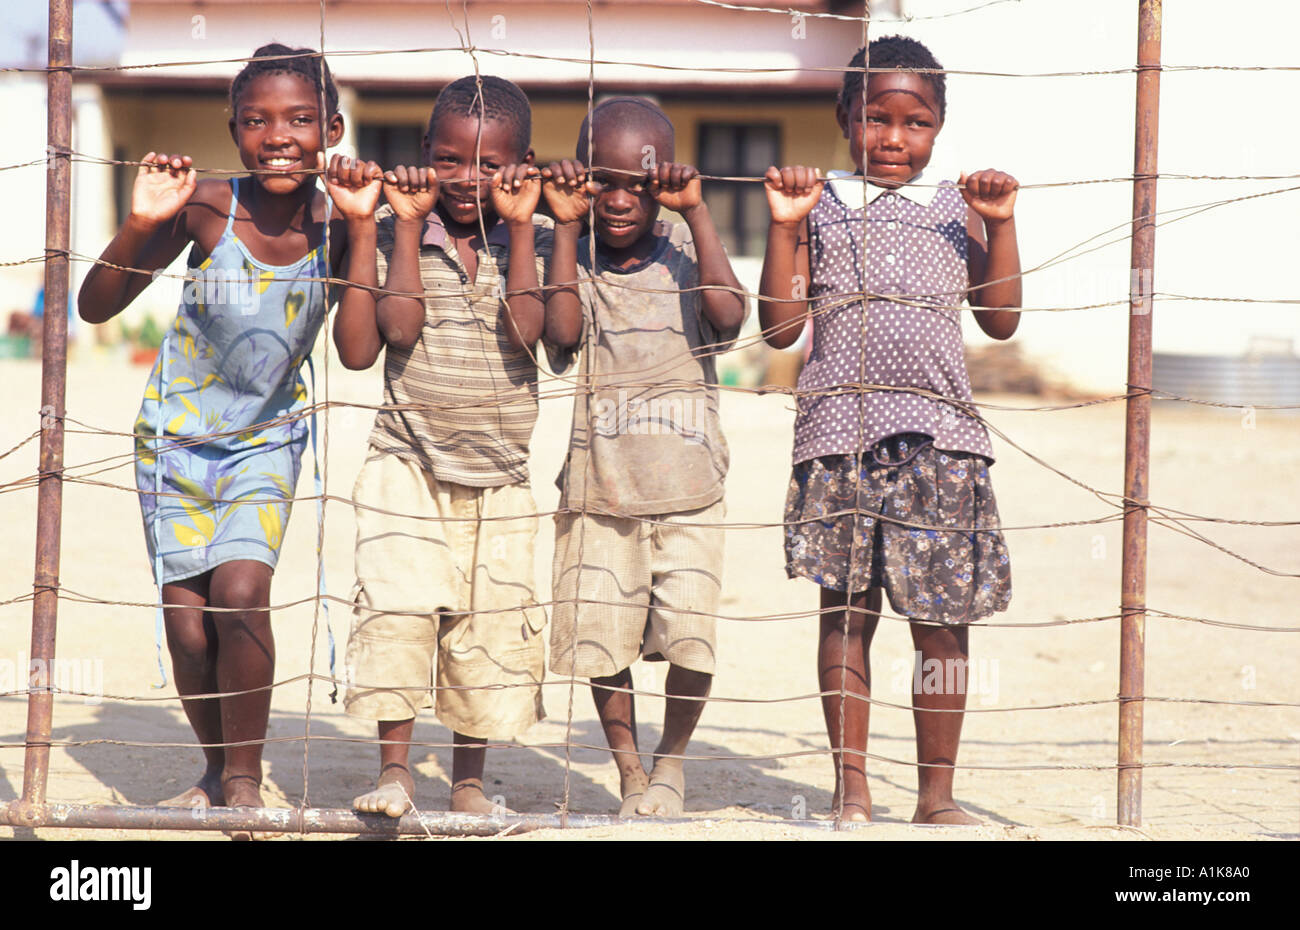 Herero children pose for a photo People flock to the MaHerero Day festival Last weekend in August Okahandja Namibia - Stock Image